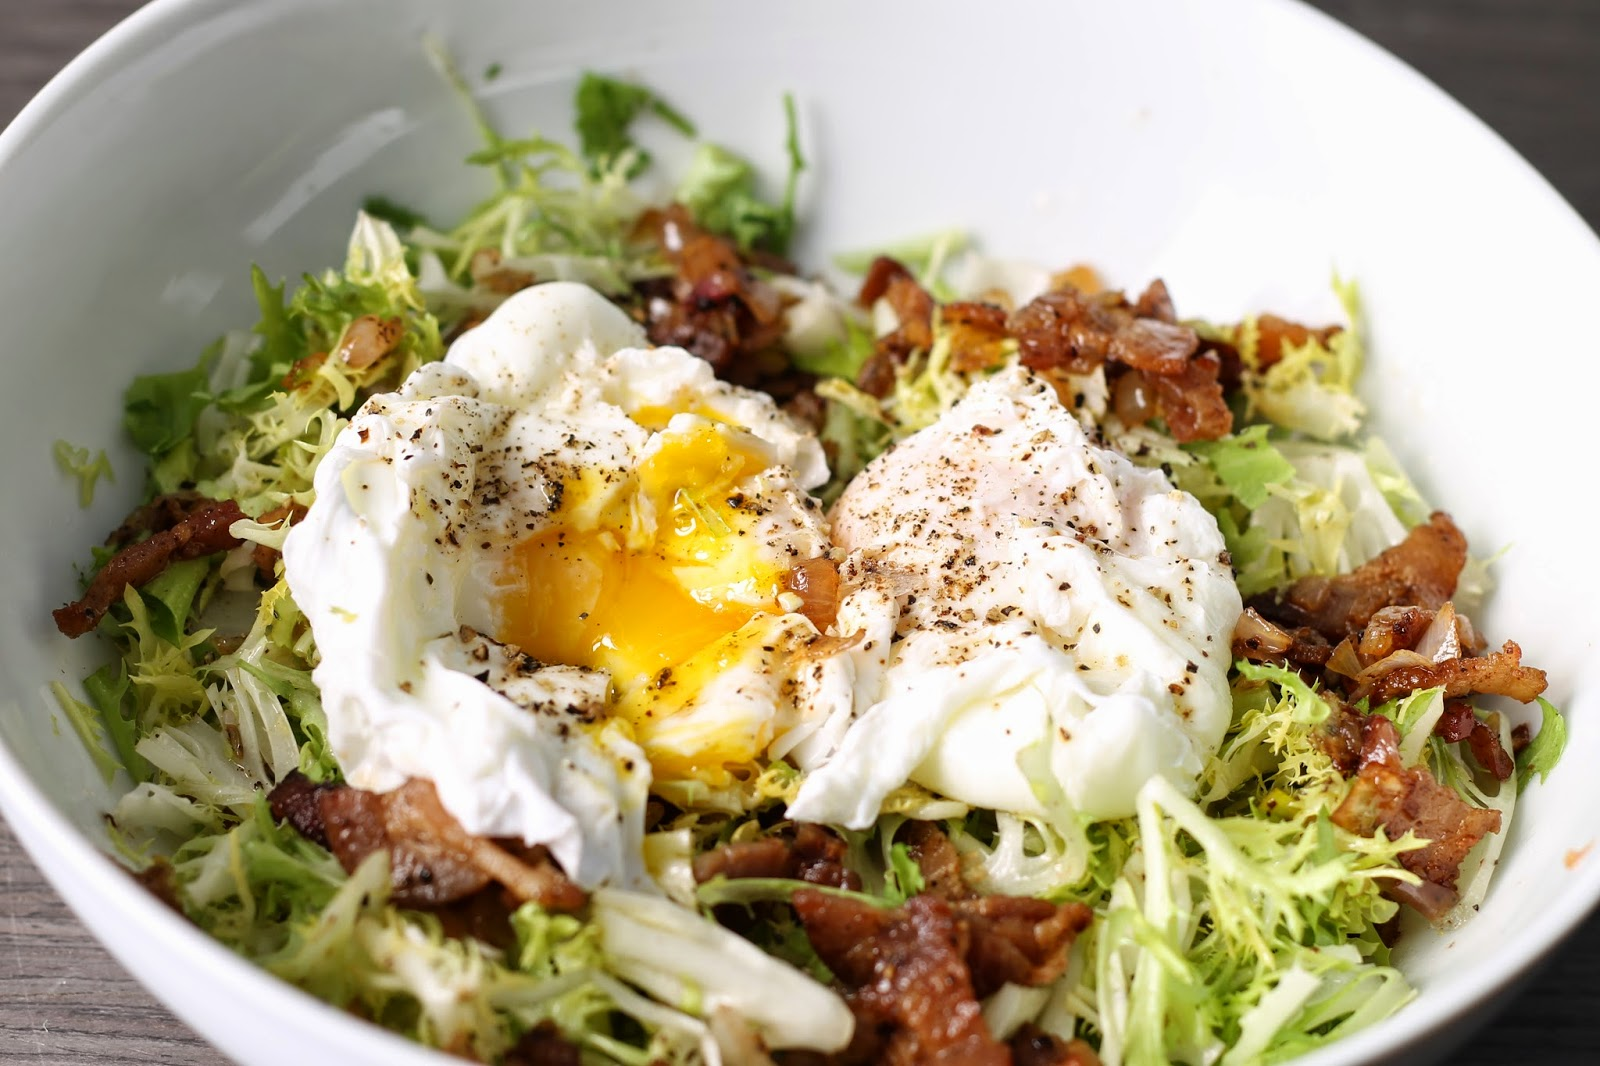 8. Friseé With Bacon and Soft-Cooked Eggs